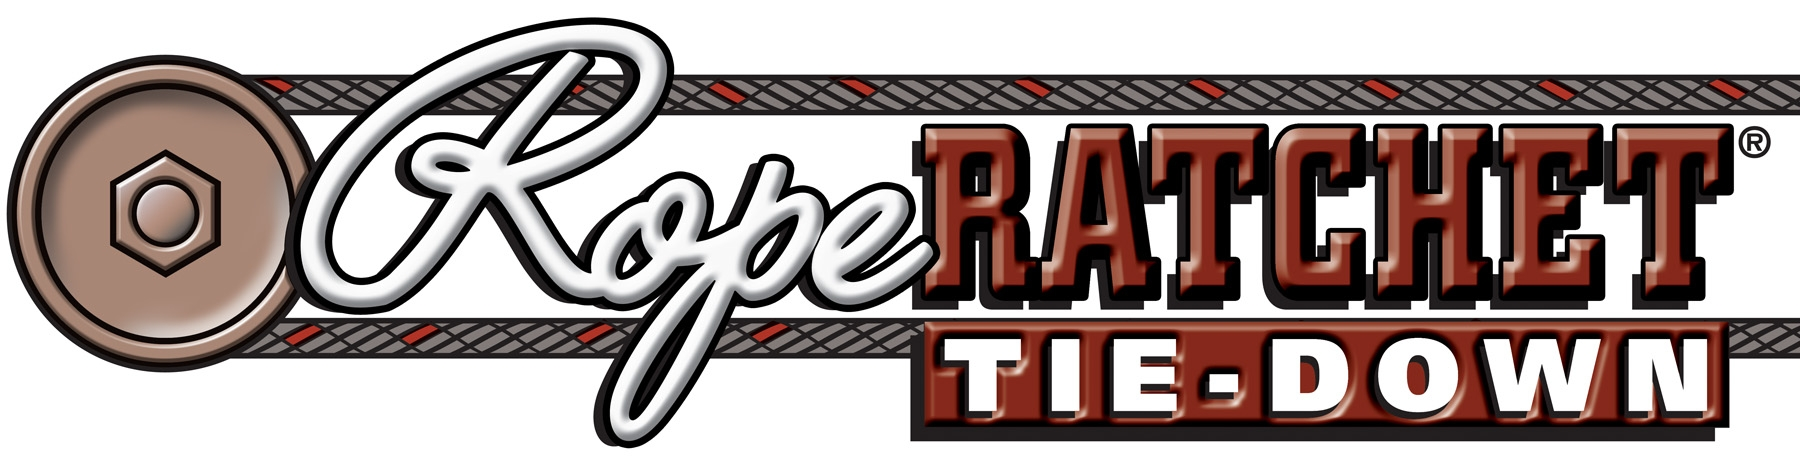 Rope Ratchet Tie Down Logo